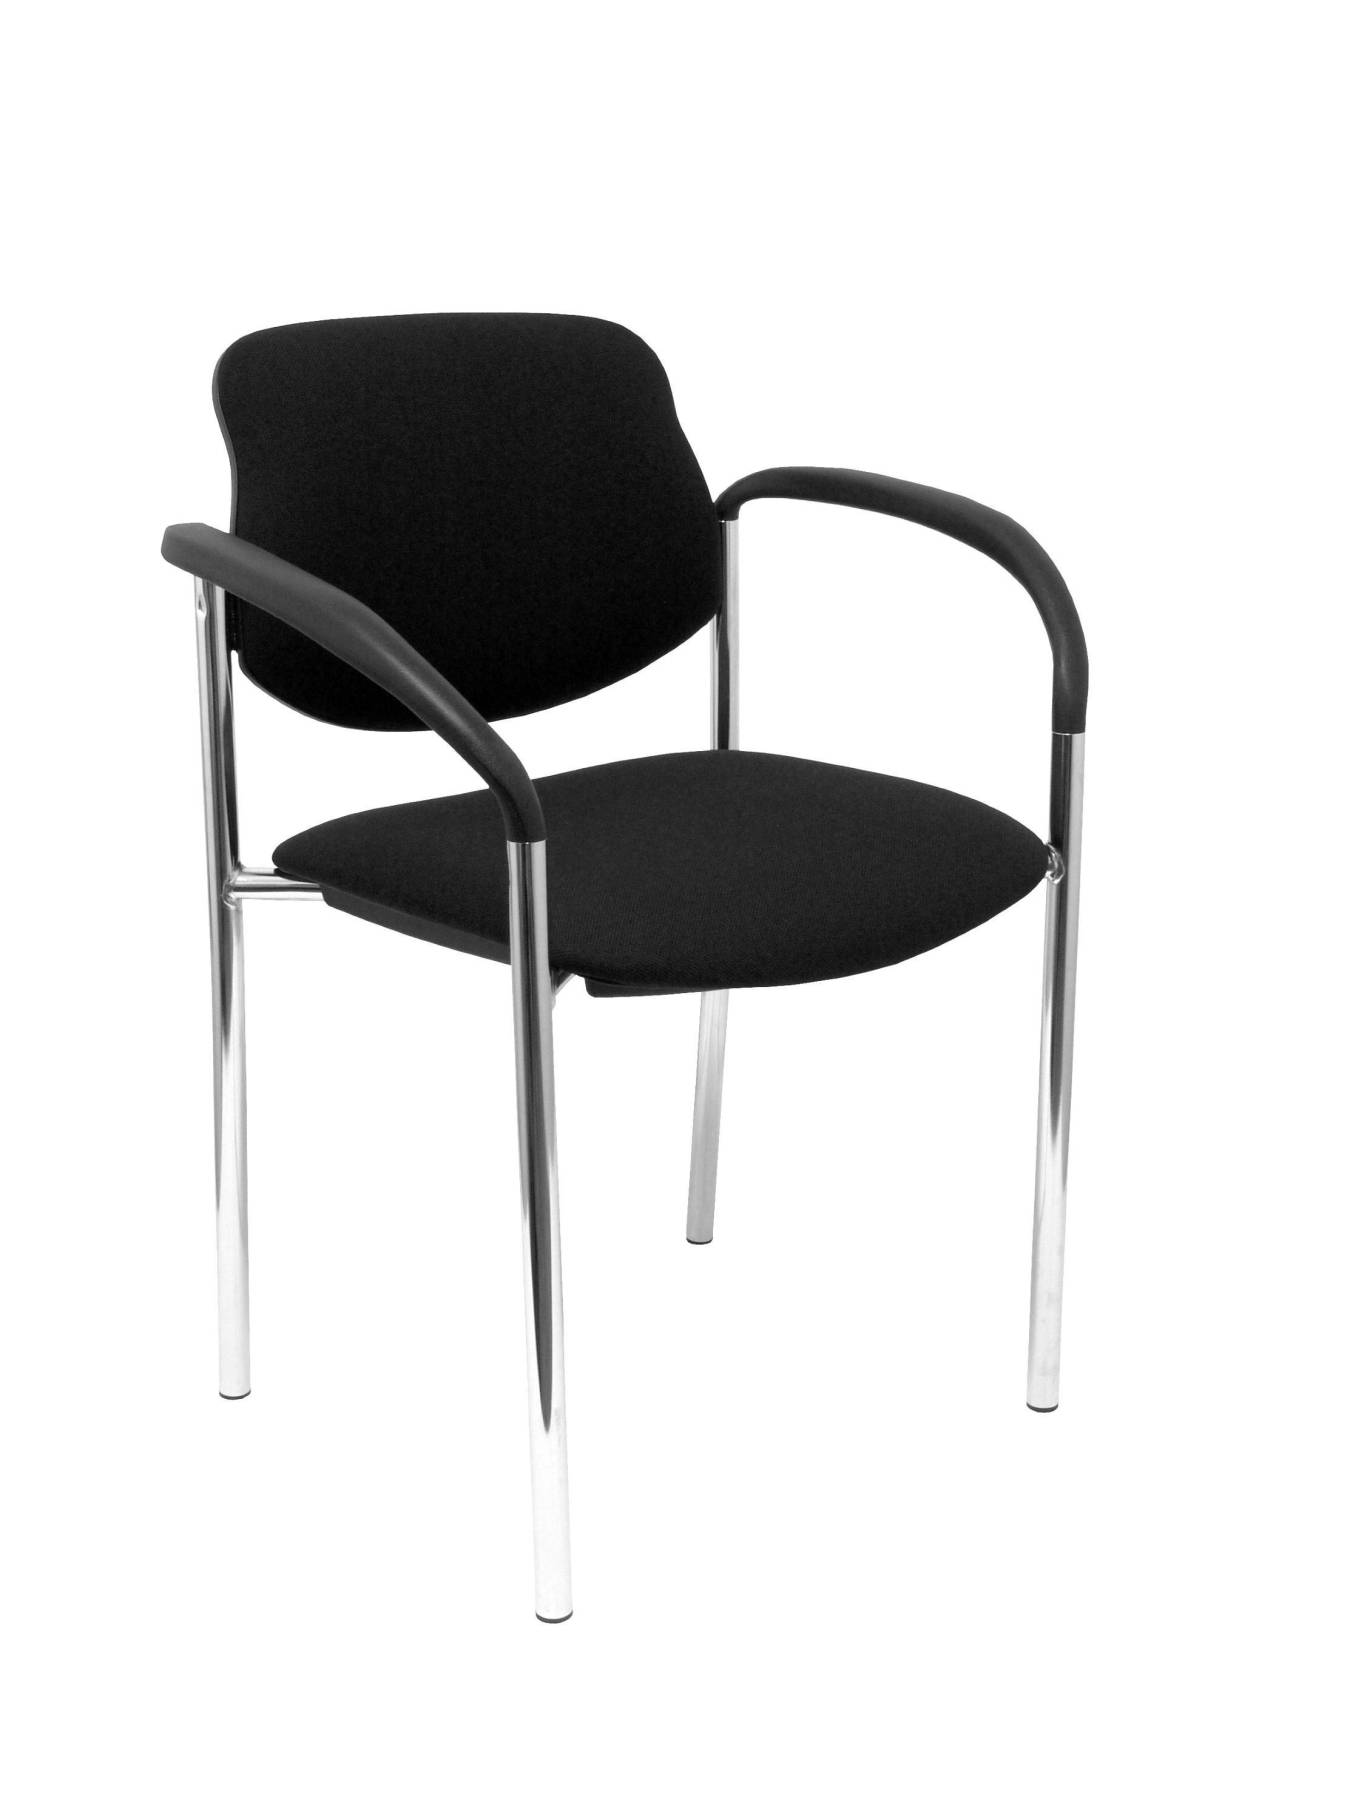 Confident Chair 4-leg And Estructrua Chrome Arms-Seat And Back Upholstered In Fabric BALI Color Black PI